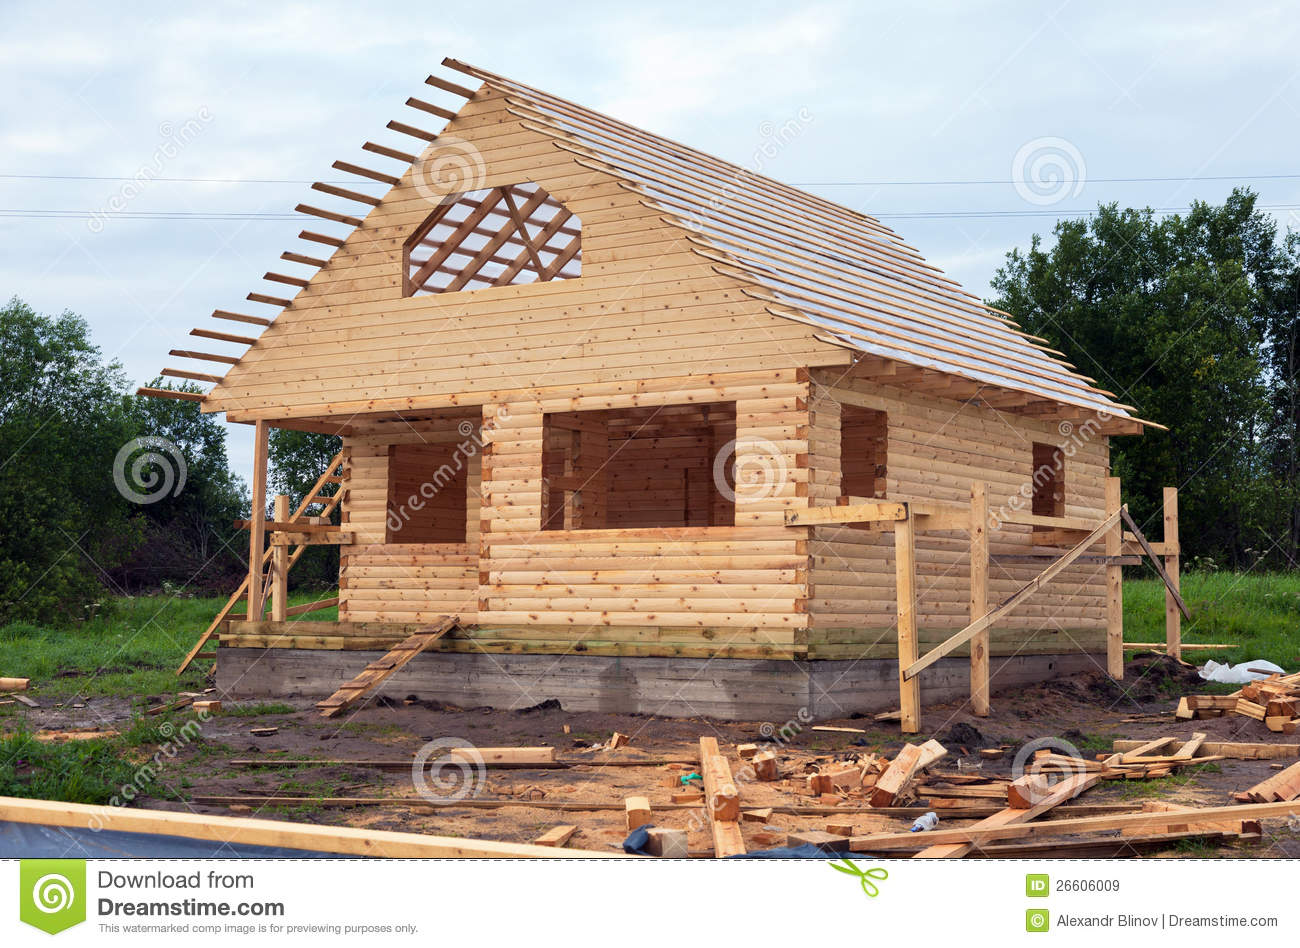 Wooden house under construction stock image image 26606009 for Dream wooden house